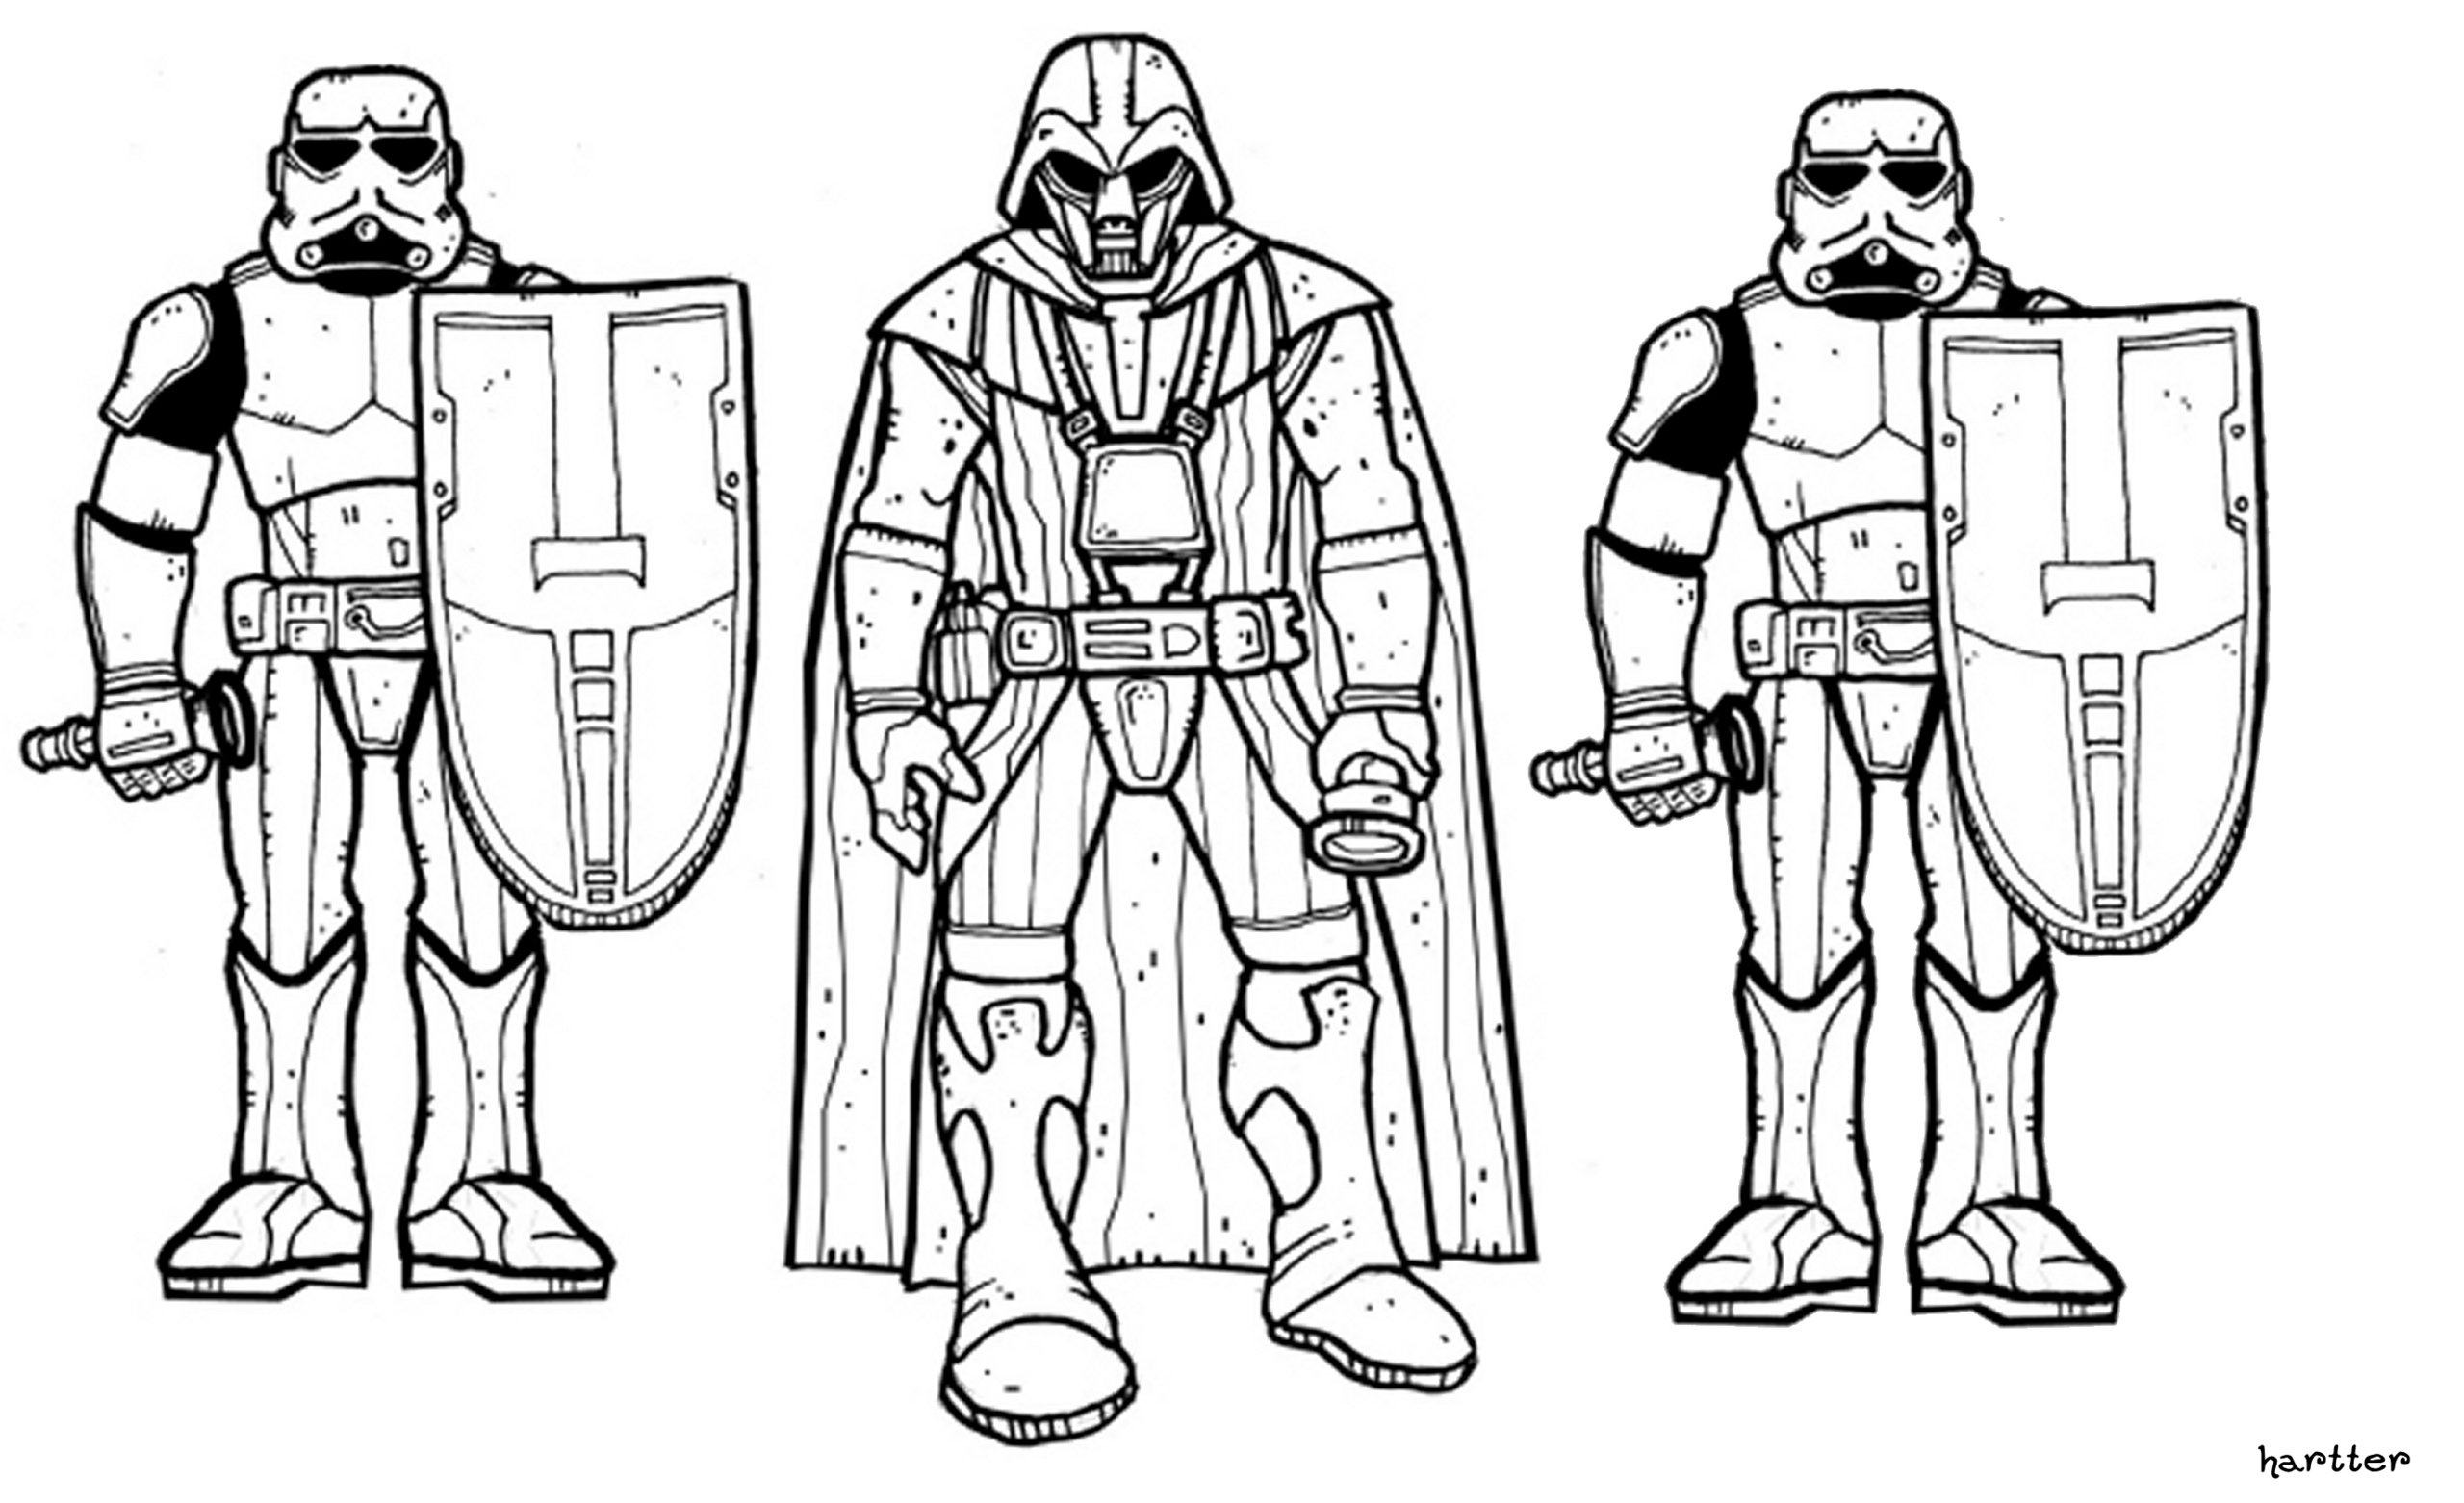 Star Wars Characters Coloring Pages Gallery Of Unique Star Wars Cartoon Characters Coloring Pages Collection to Print